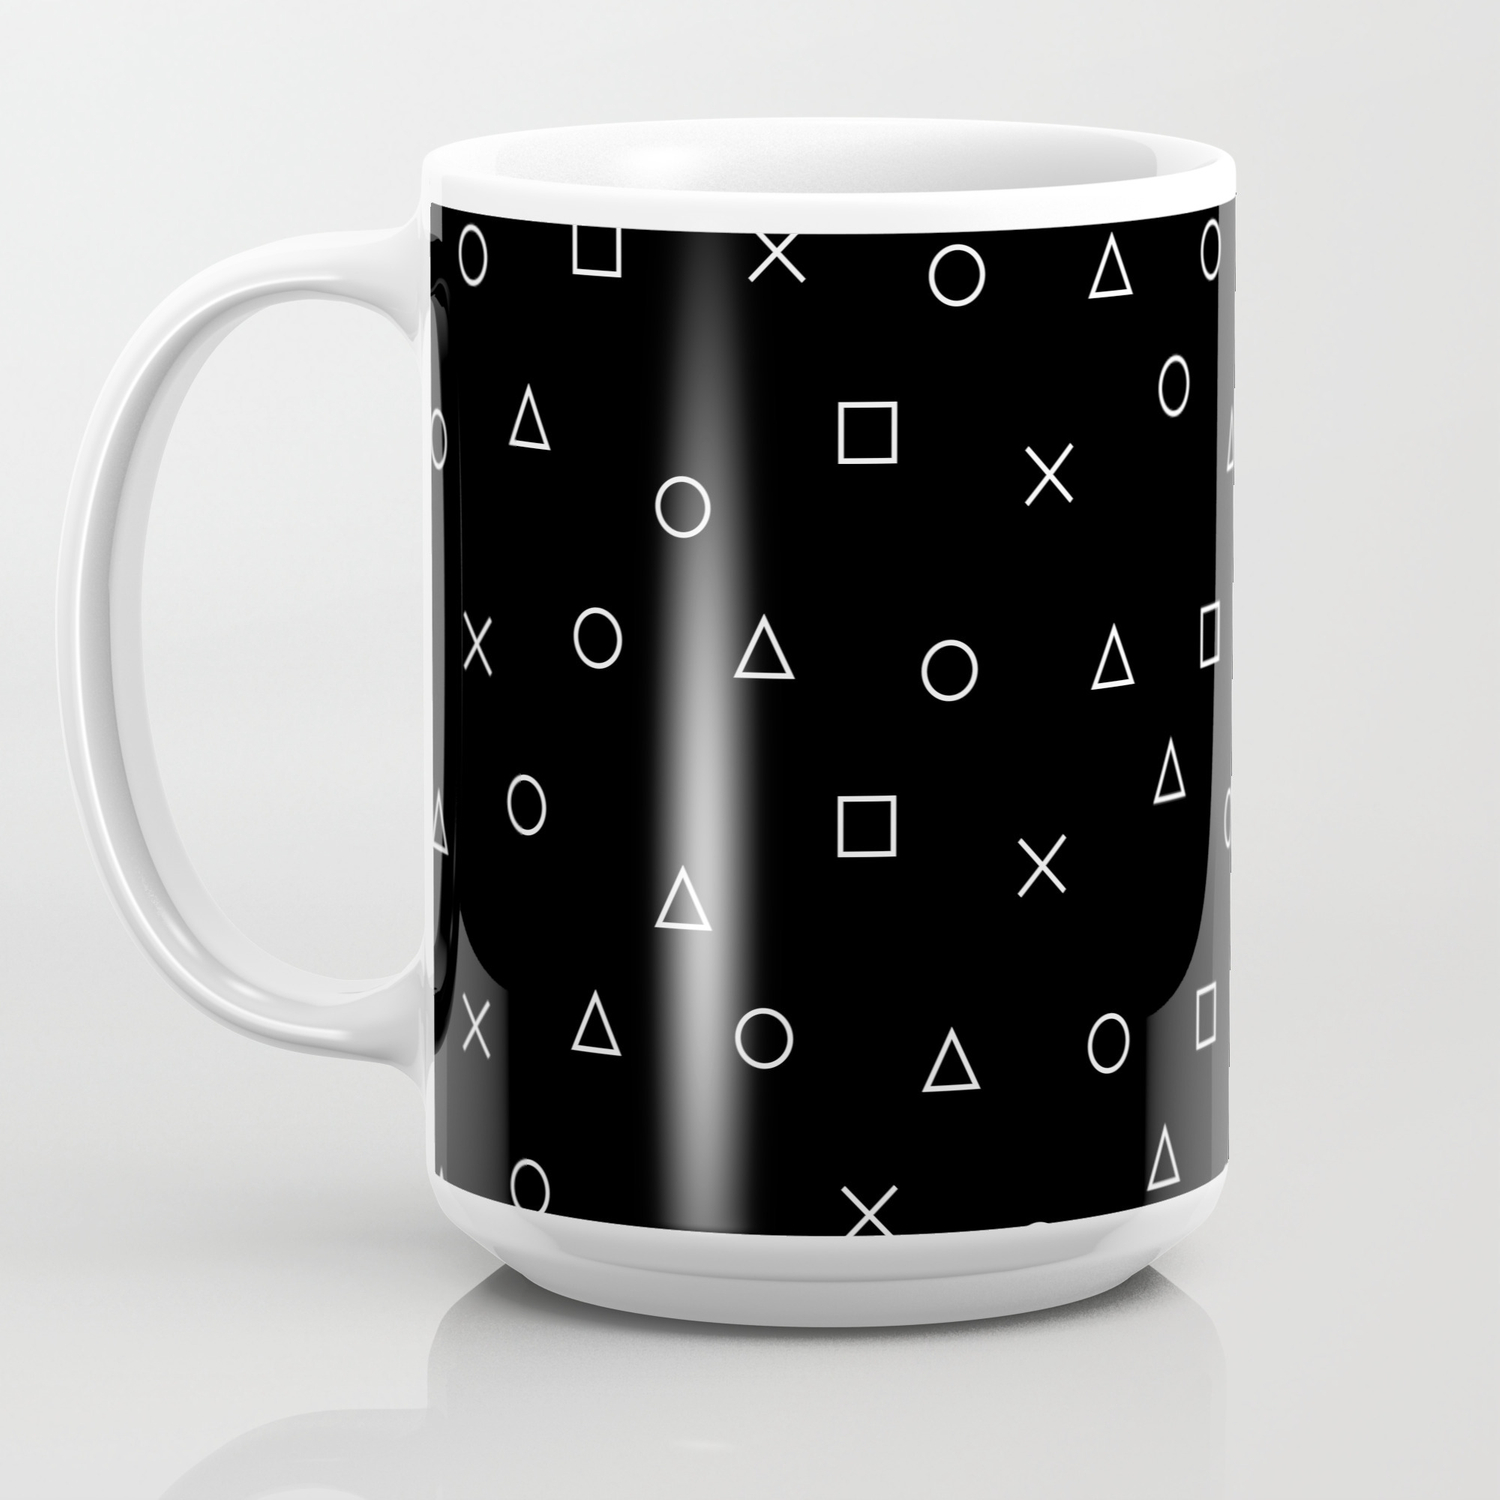 Design Symbols Gaming Coffee Mug Playstation Controller Pattern Gamer Black Lcq3AR54j